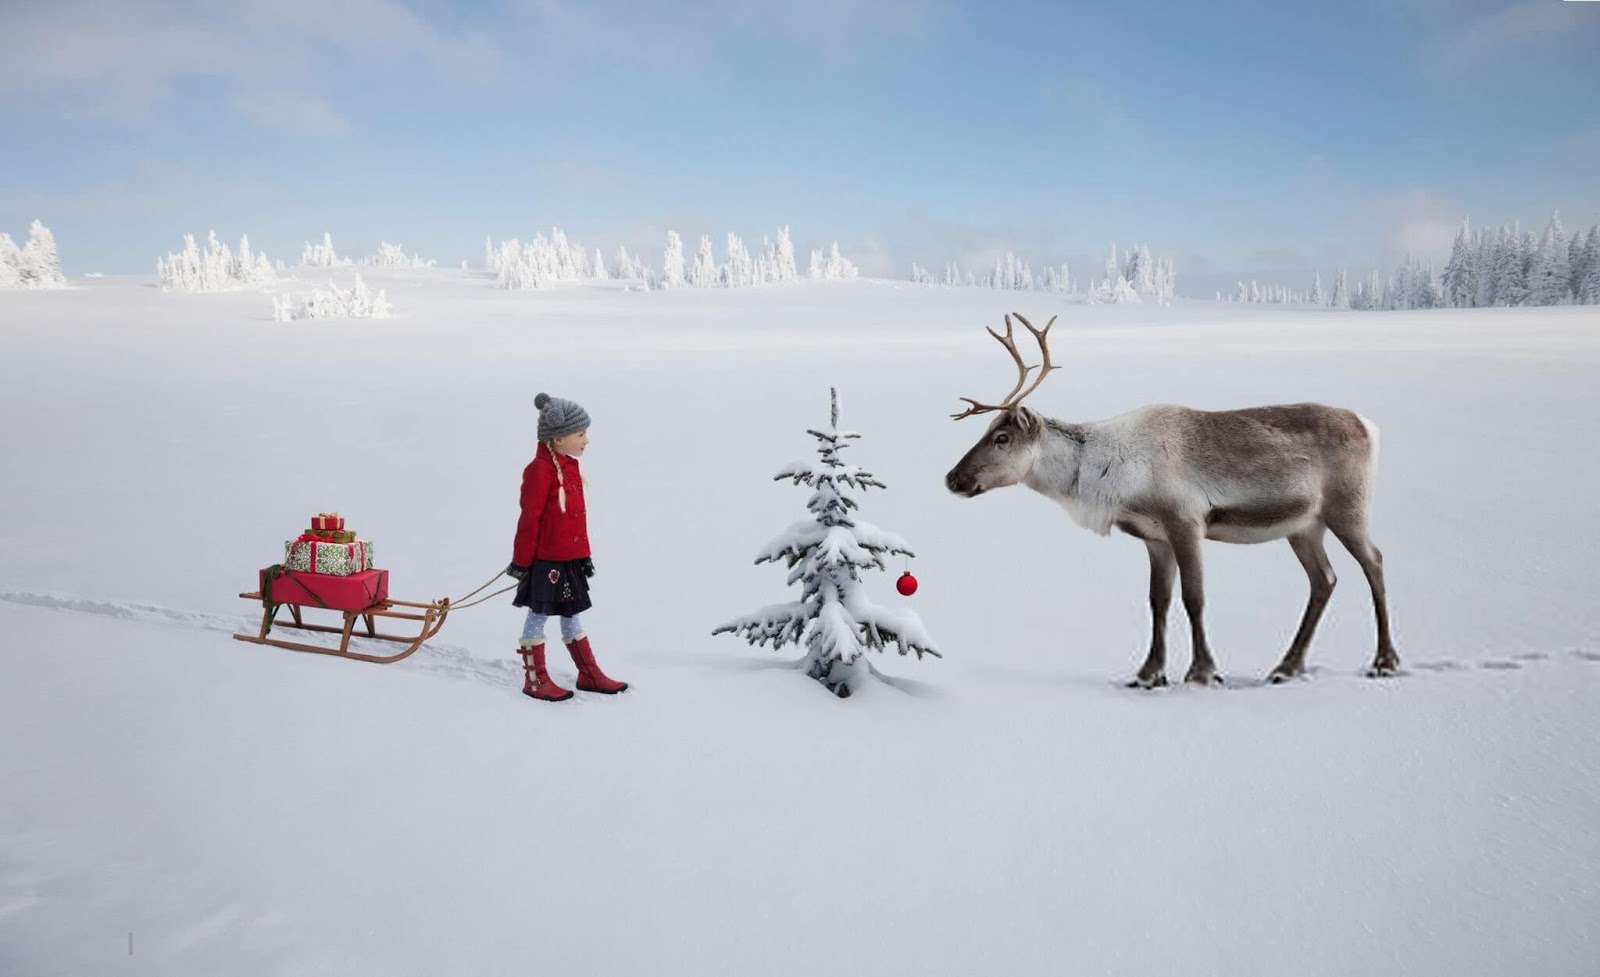 Christmas Scenes Images & Christmas Scenes Wallpaper